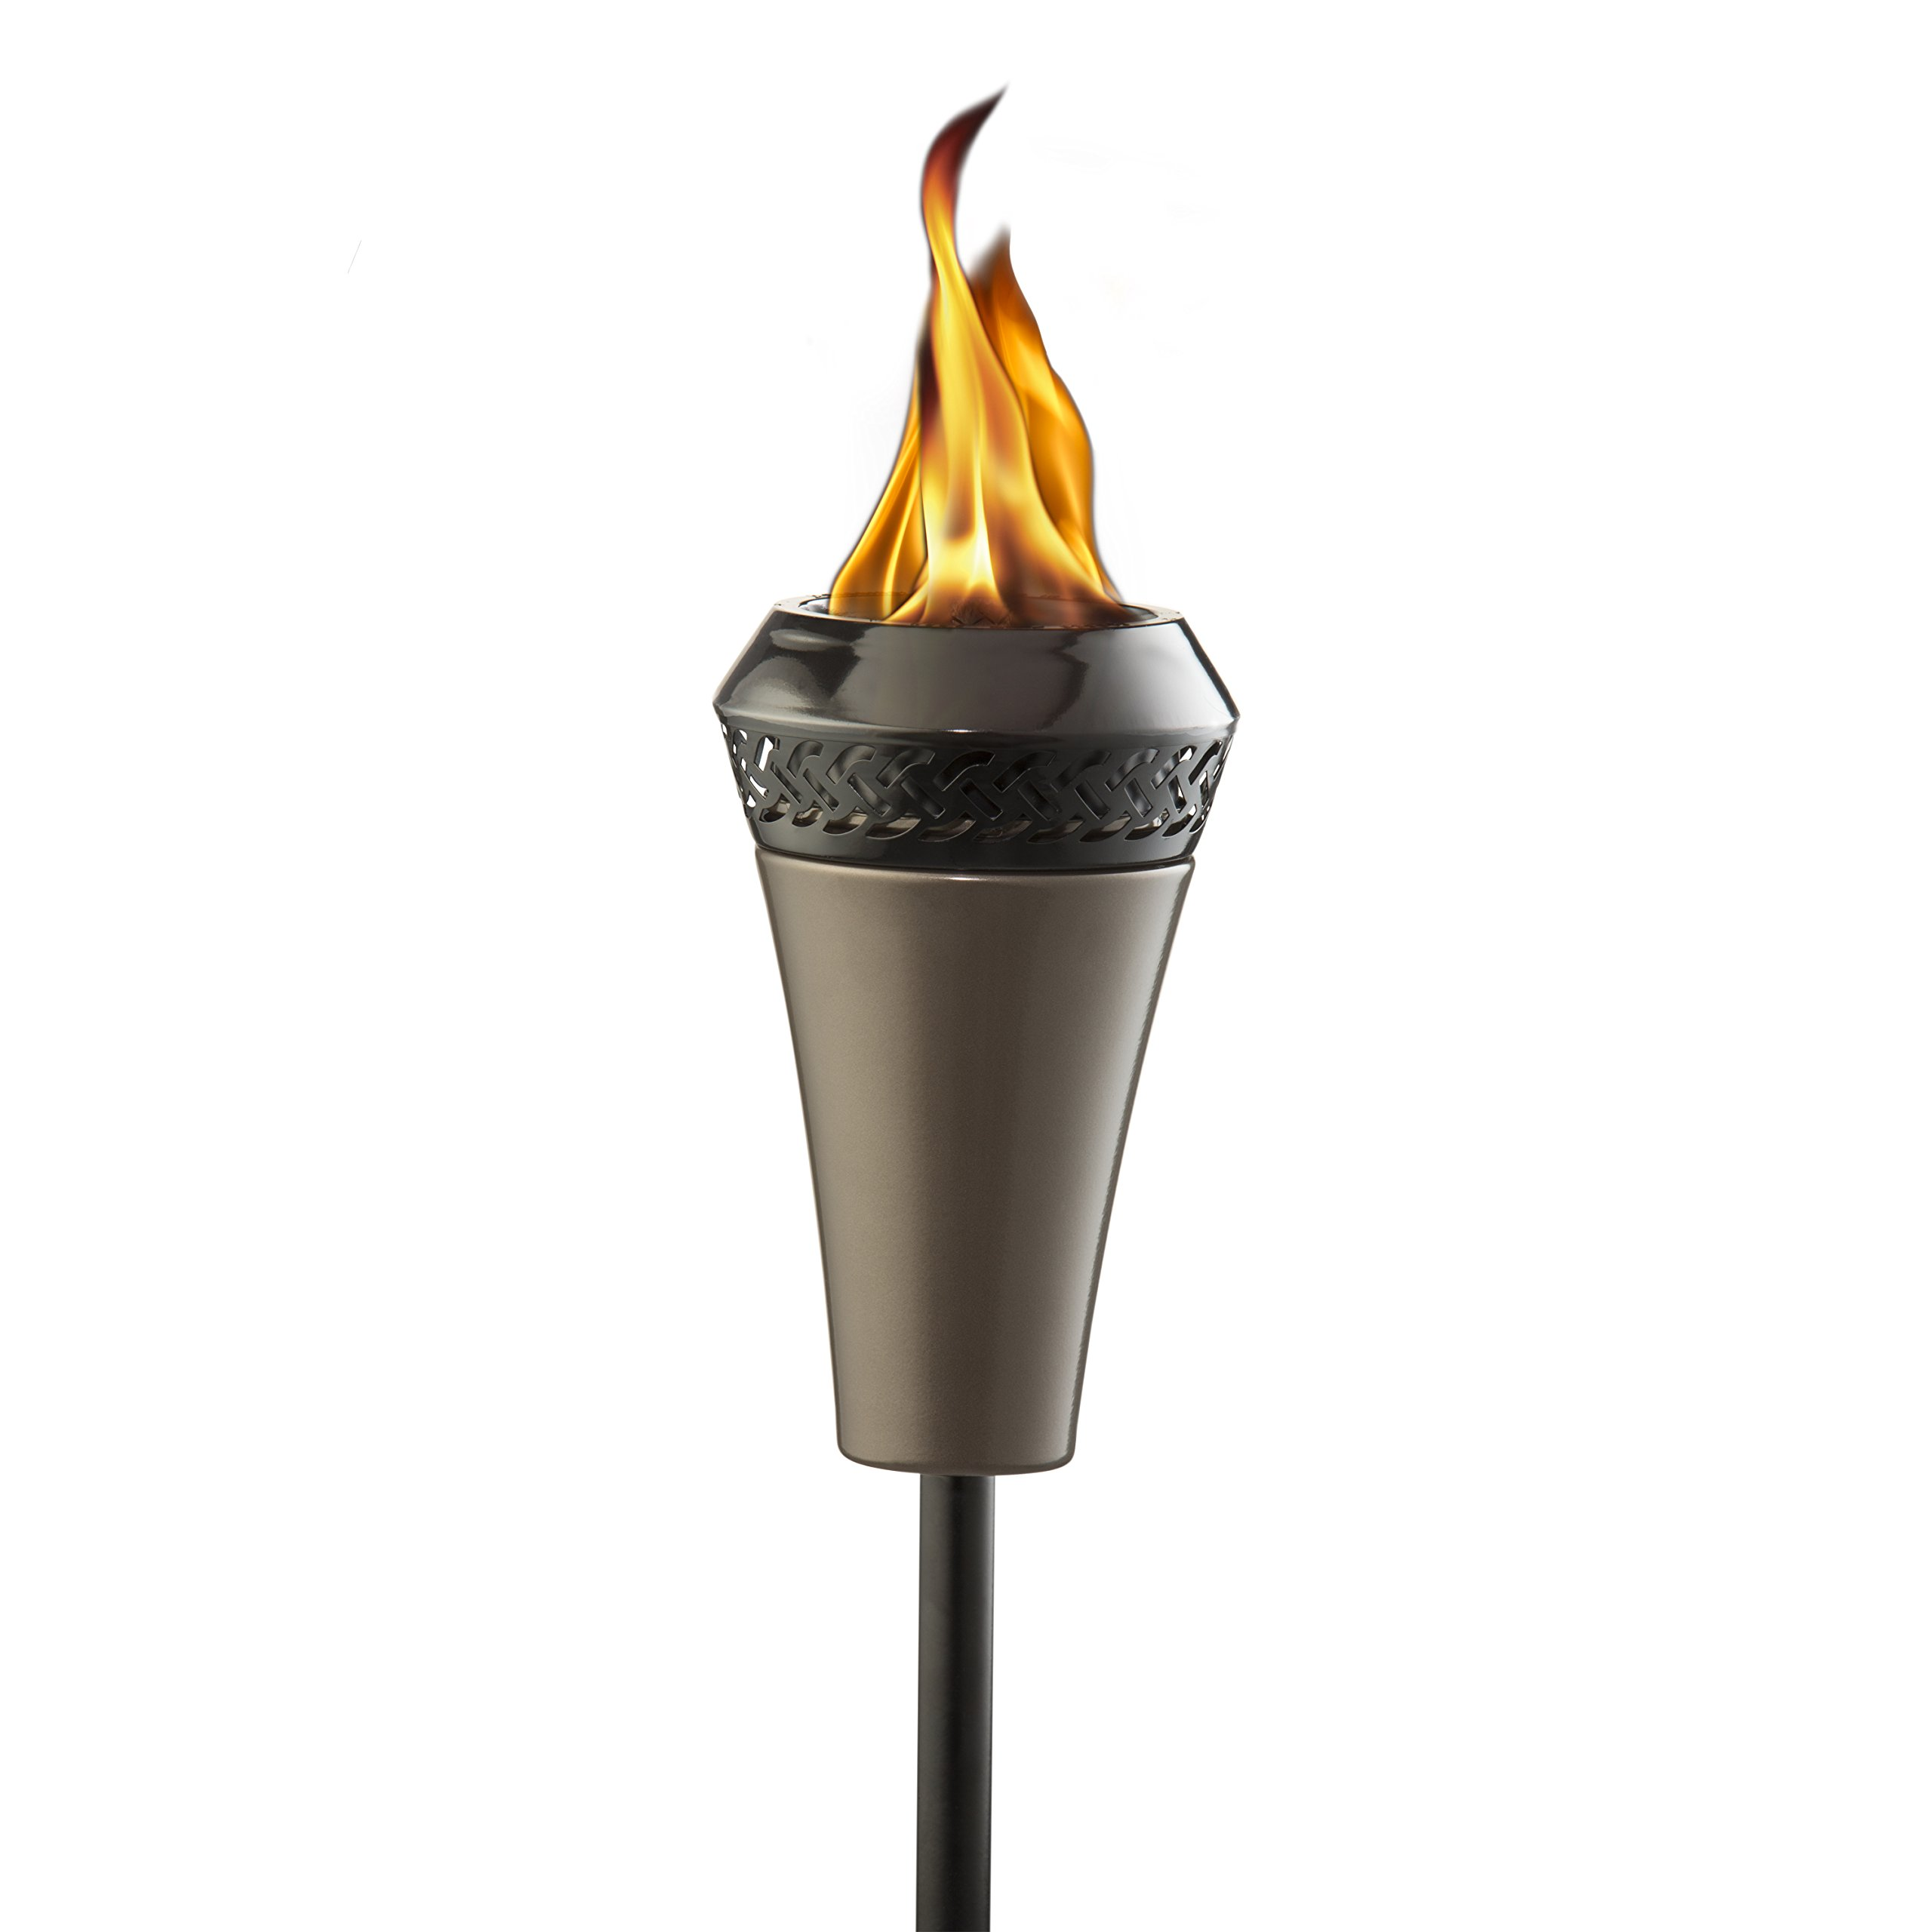 TIKI Brand 66-Inch Island King Large Flame Torch, Gunmetal Finish by Tiki